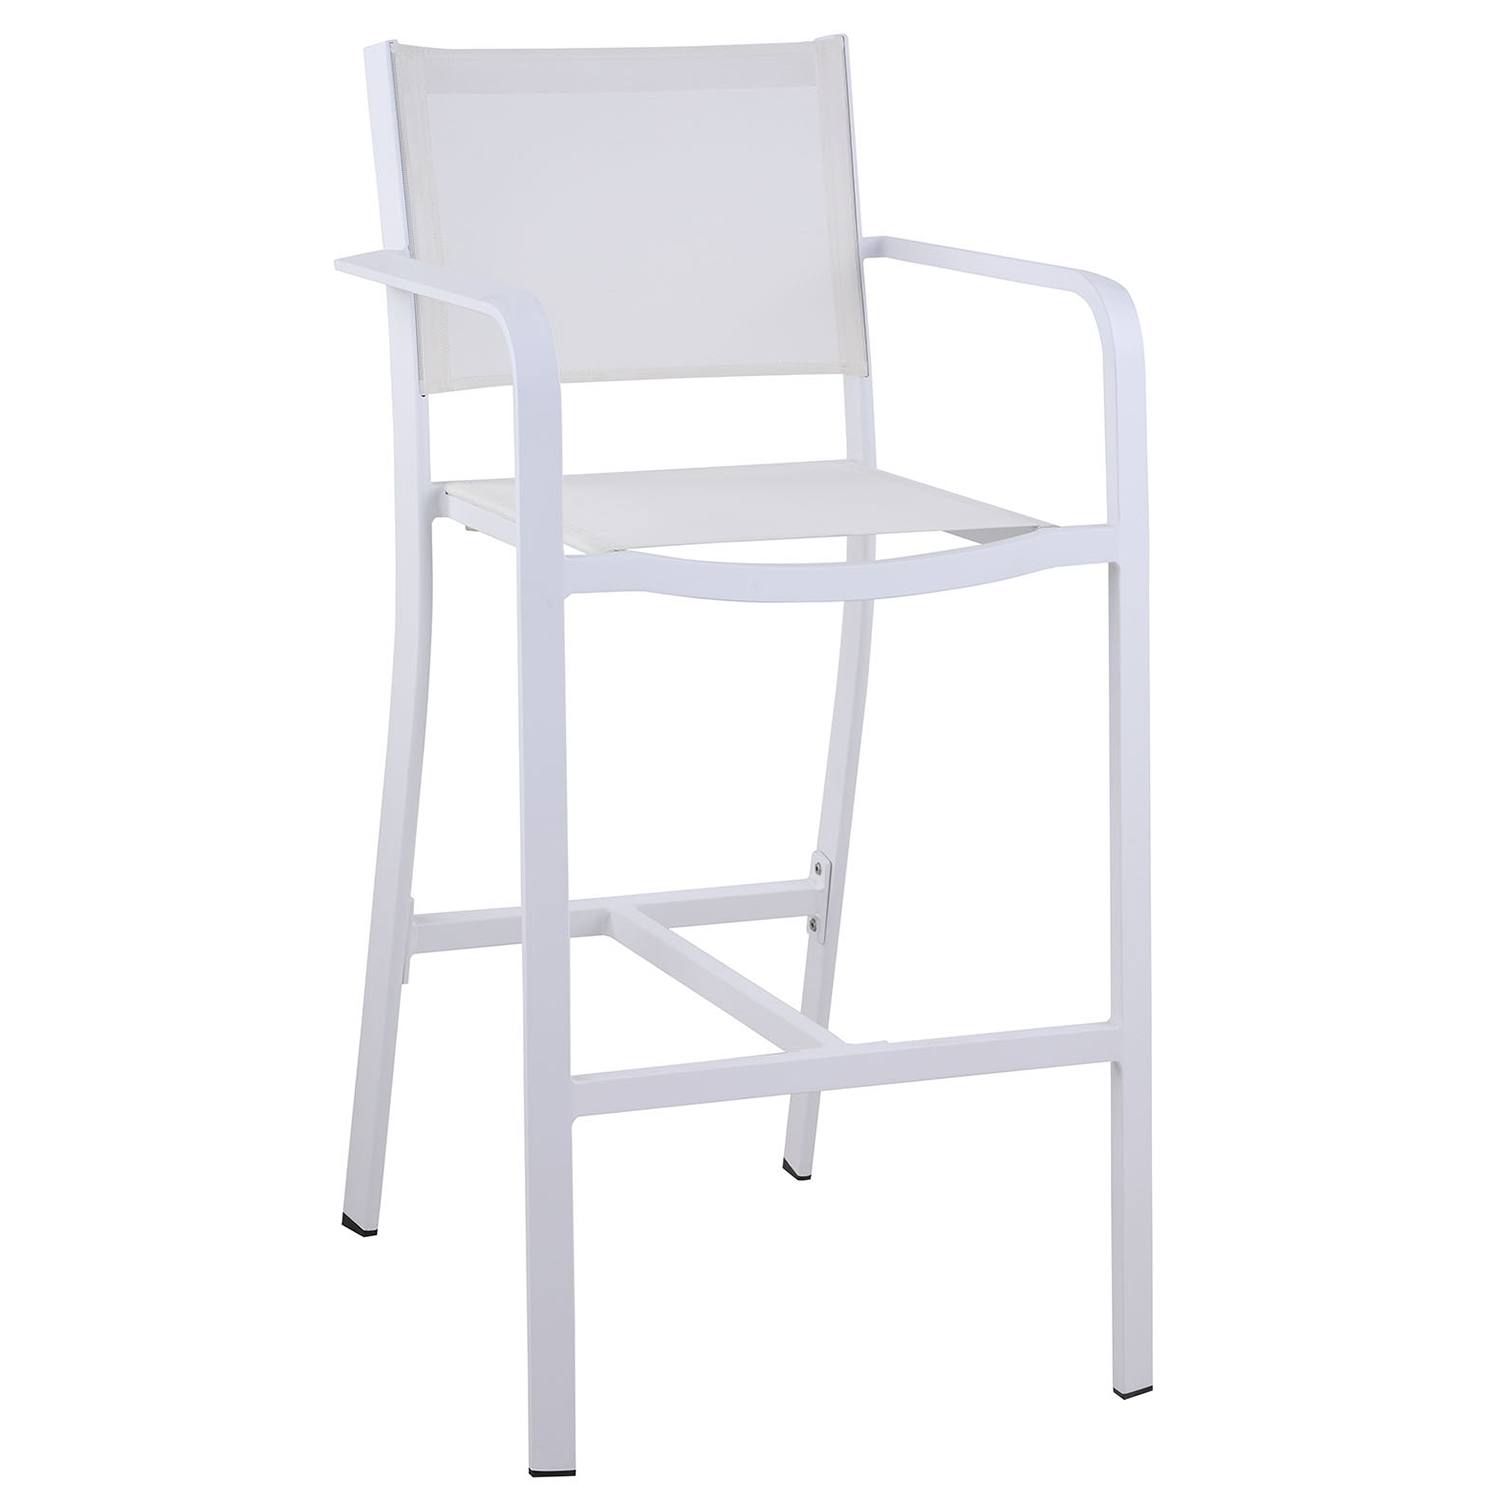 Phenomenal Carmel Outdoor Bar Stool In White Textilene Aluminum Set Of 4 By Chintaly Imports Squirreltailoven Fun Painted Chair Ideas Images Squirreltailovenorg